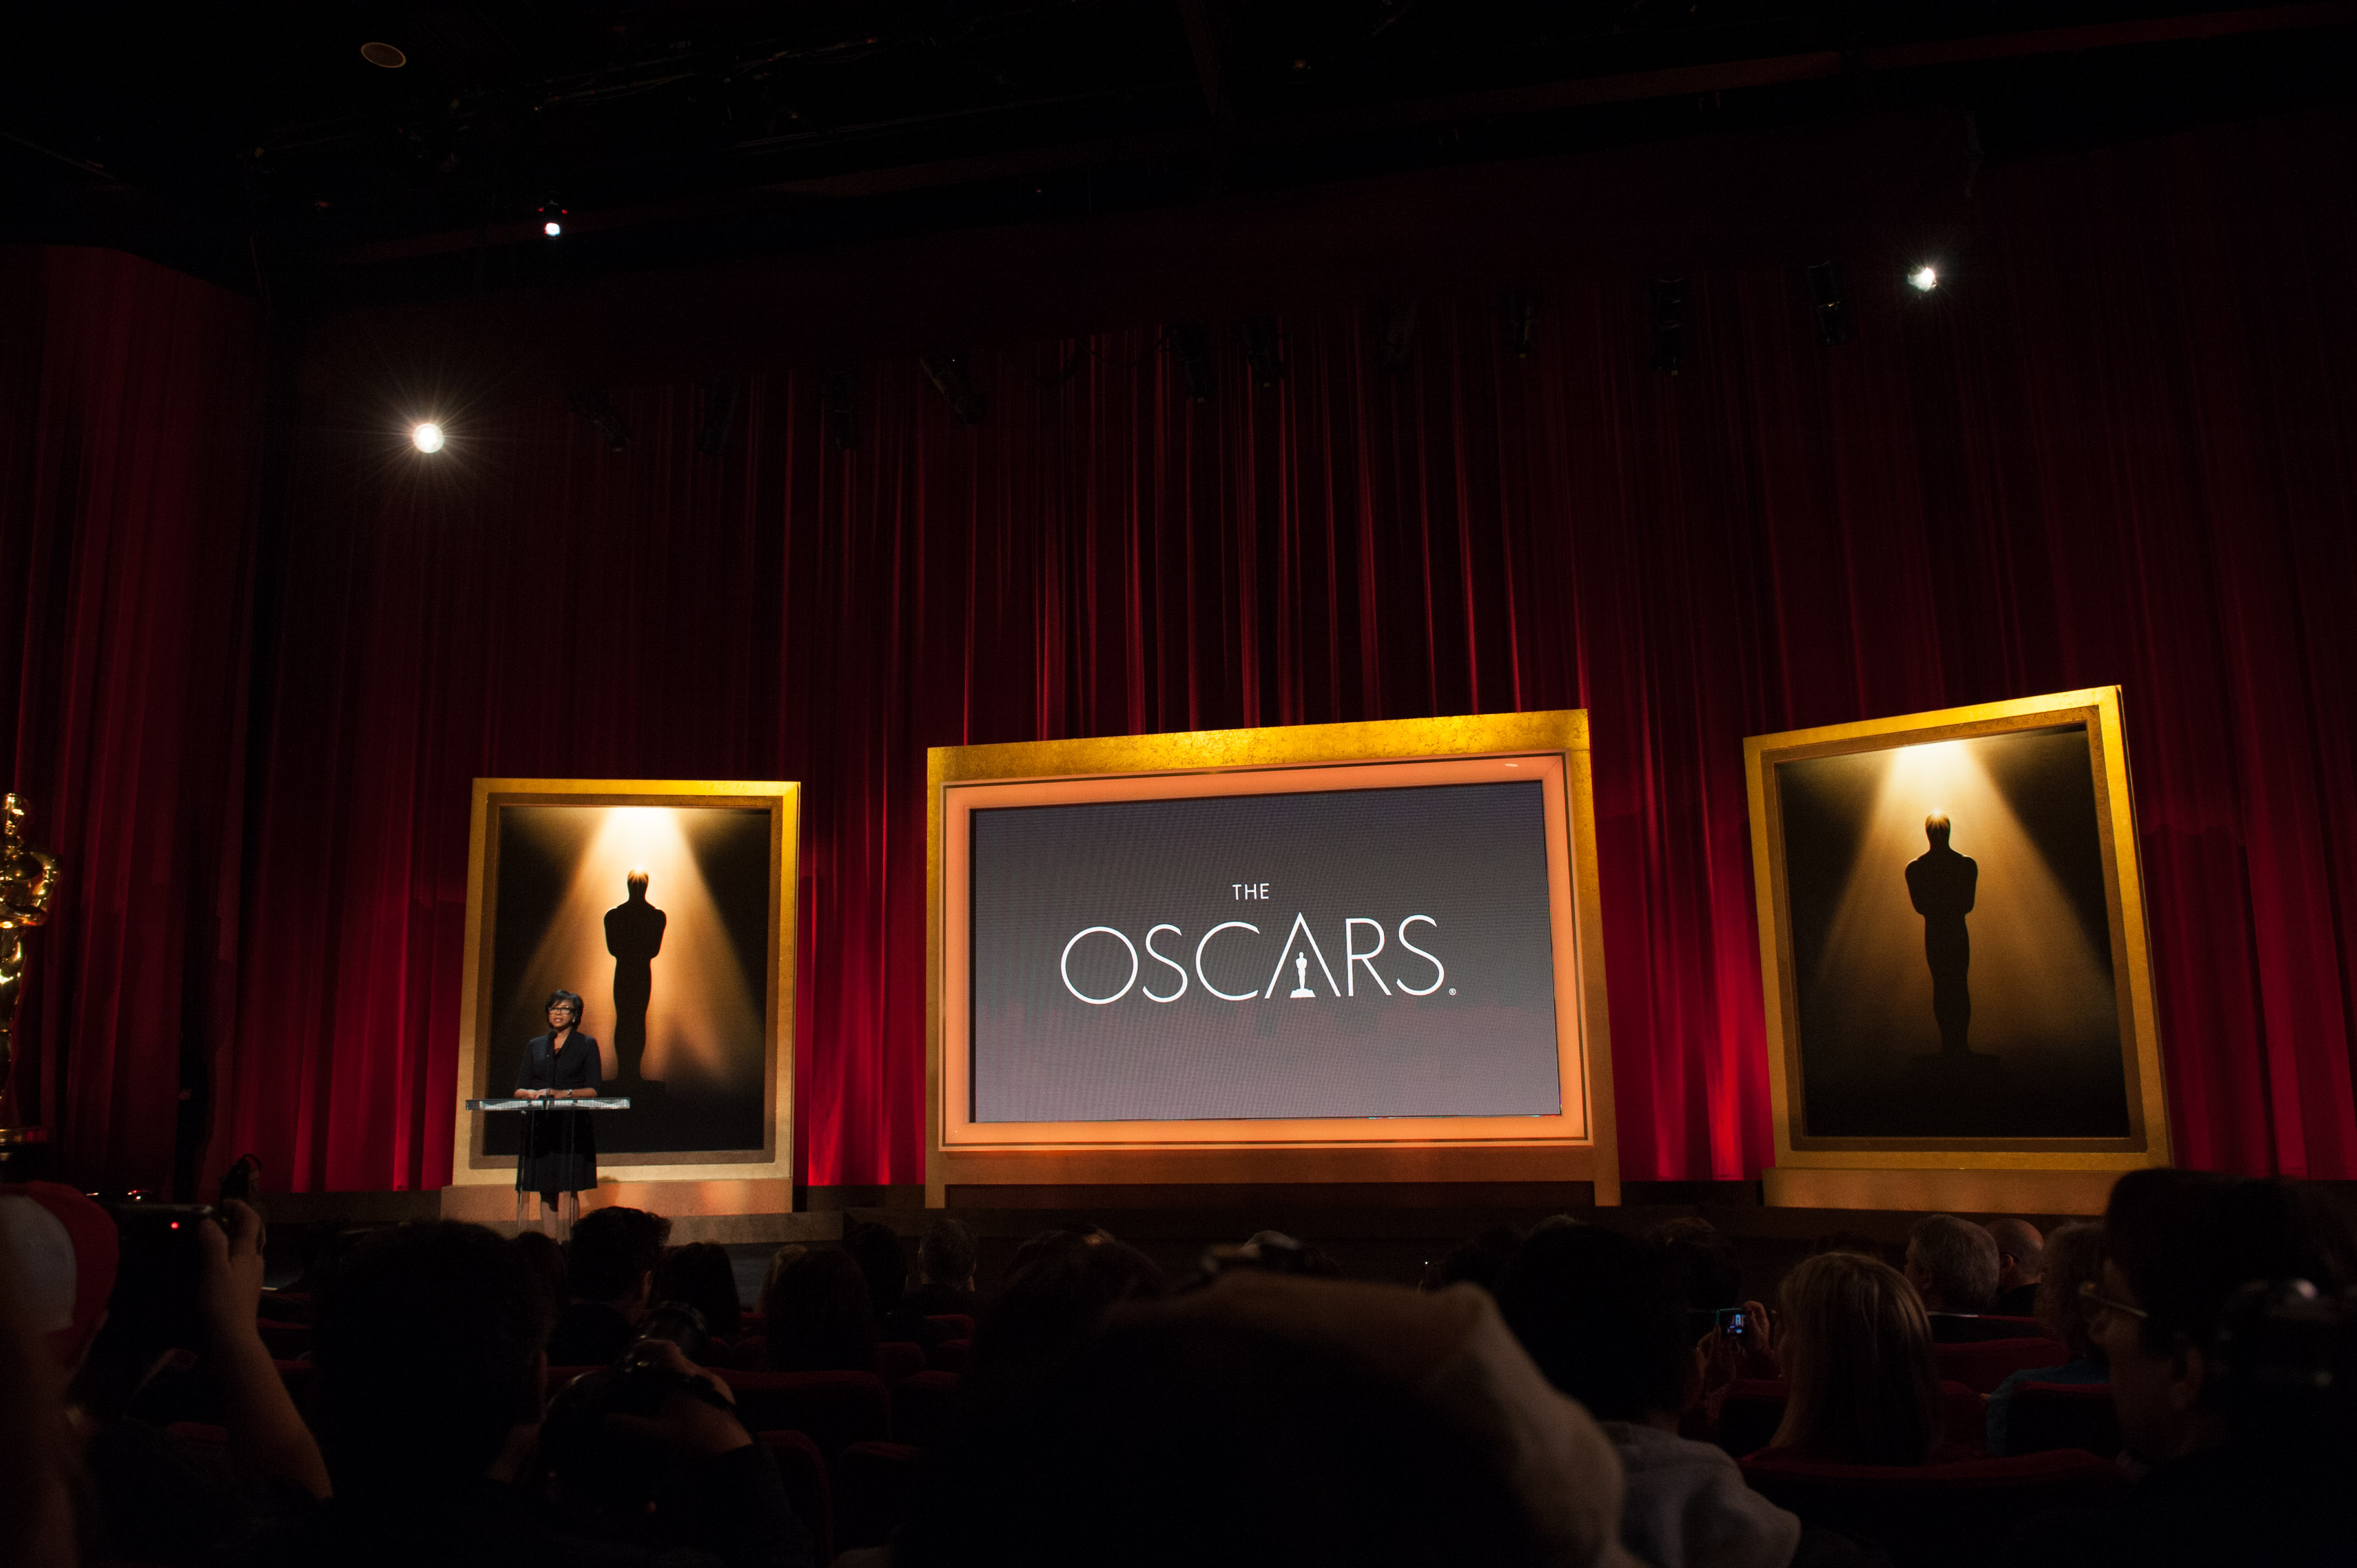 Academy Awards Nomination Announcement 2 Full List of Oscar Nominees for the 86th Academy Awards